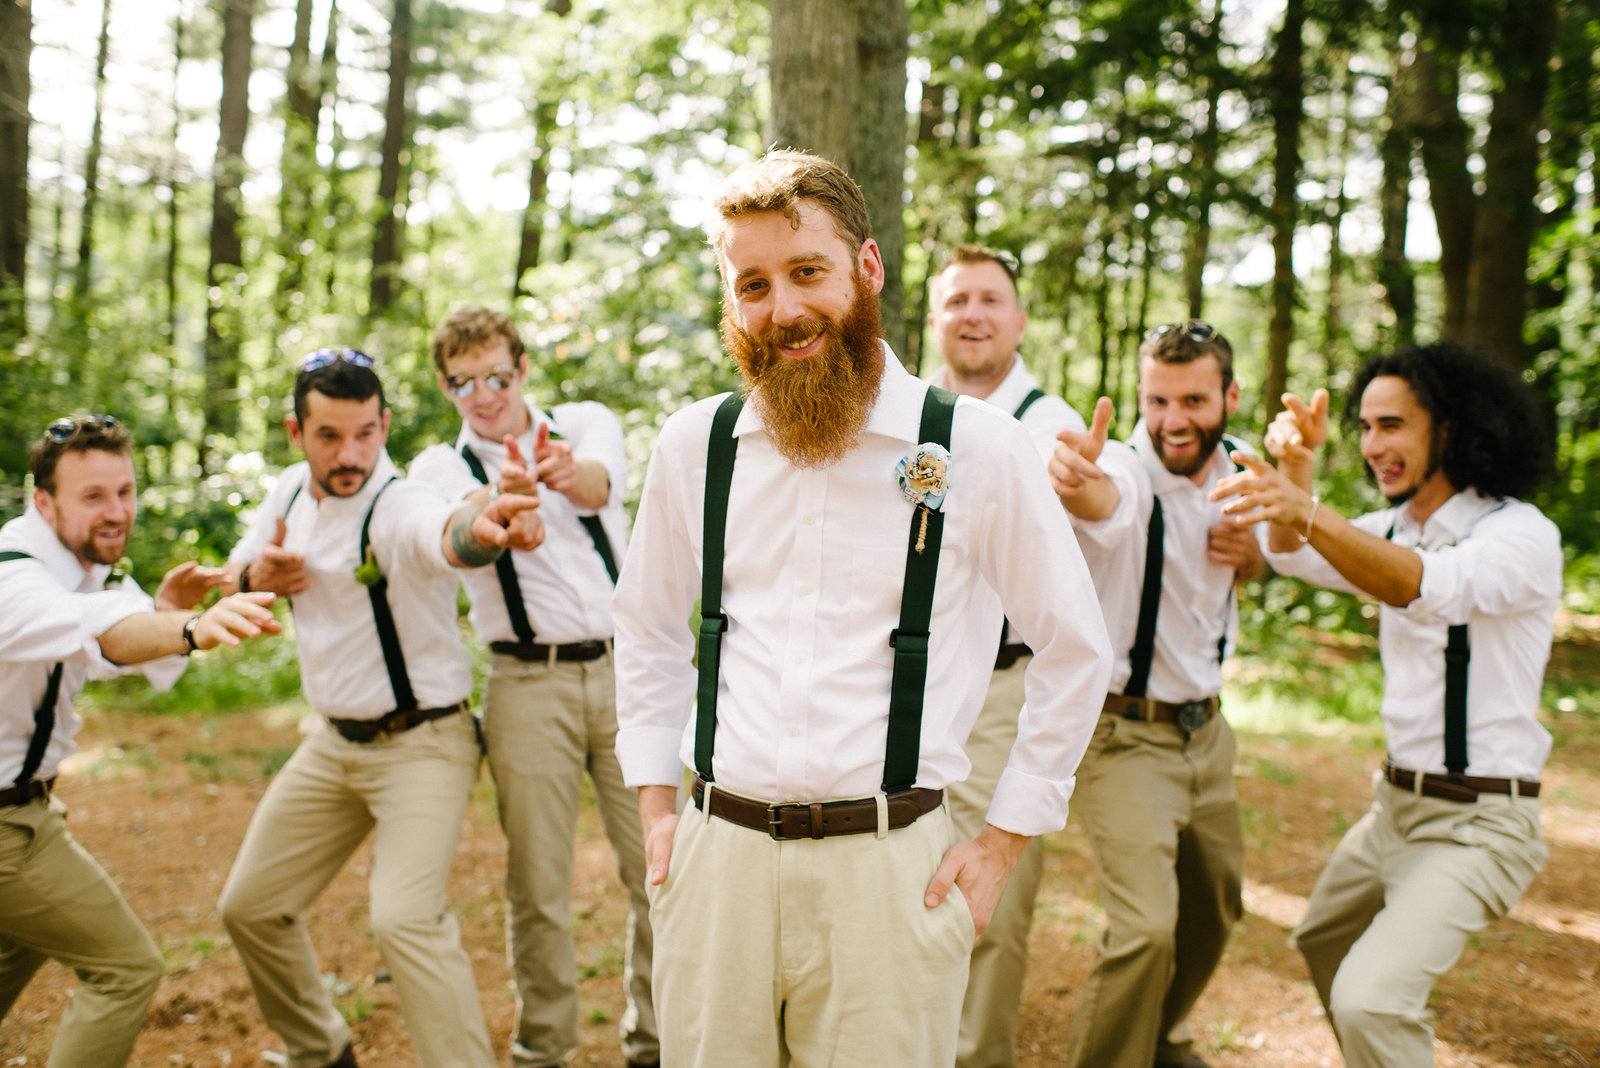 Camp Kiwanee MA bearded groom standing in front of groomsmen